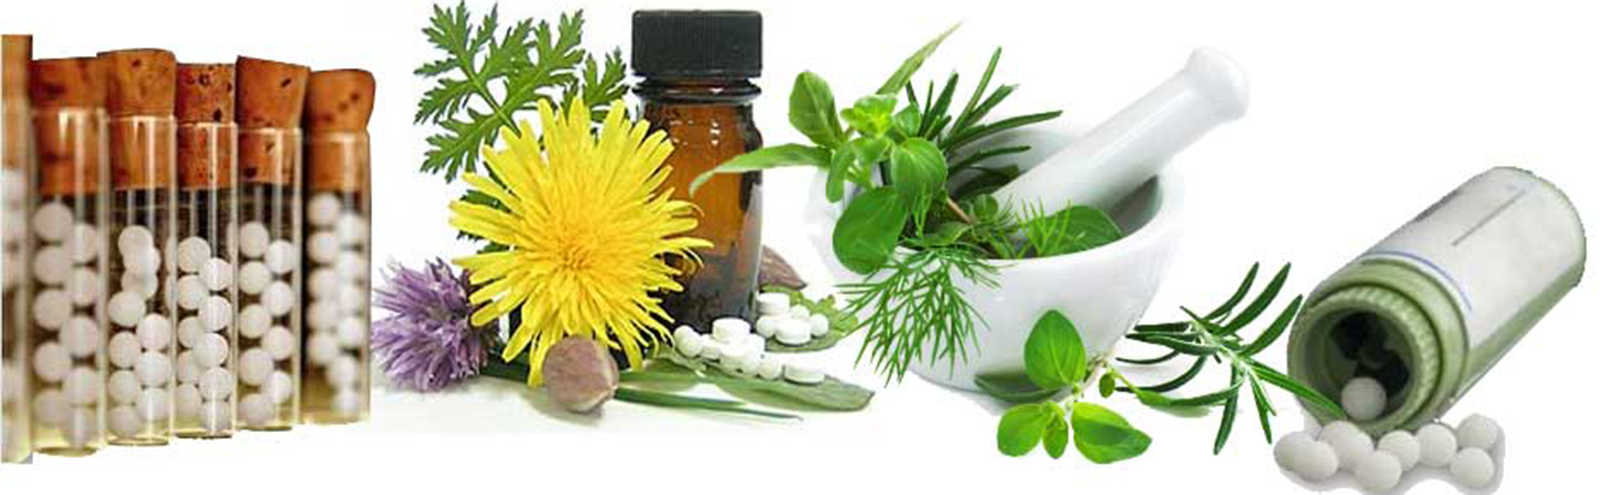 succession potentized homeopathic and dynamic phytotherapy remedies Animal/lab studies by date of publication  treatment with homeopathic remedies significantly increased the  and morphological studies using dynamic light.